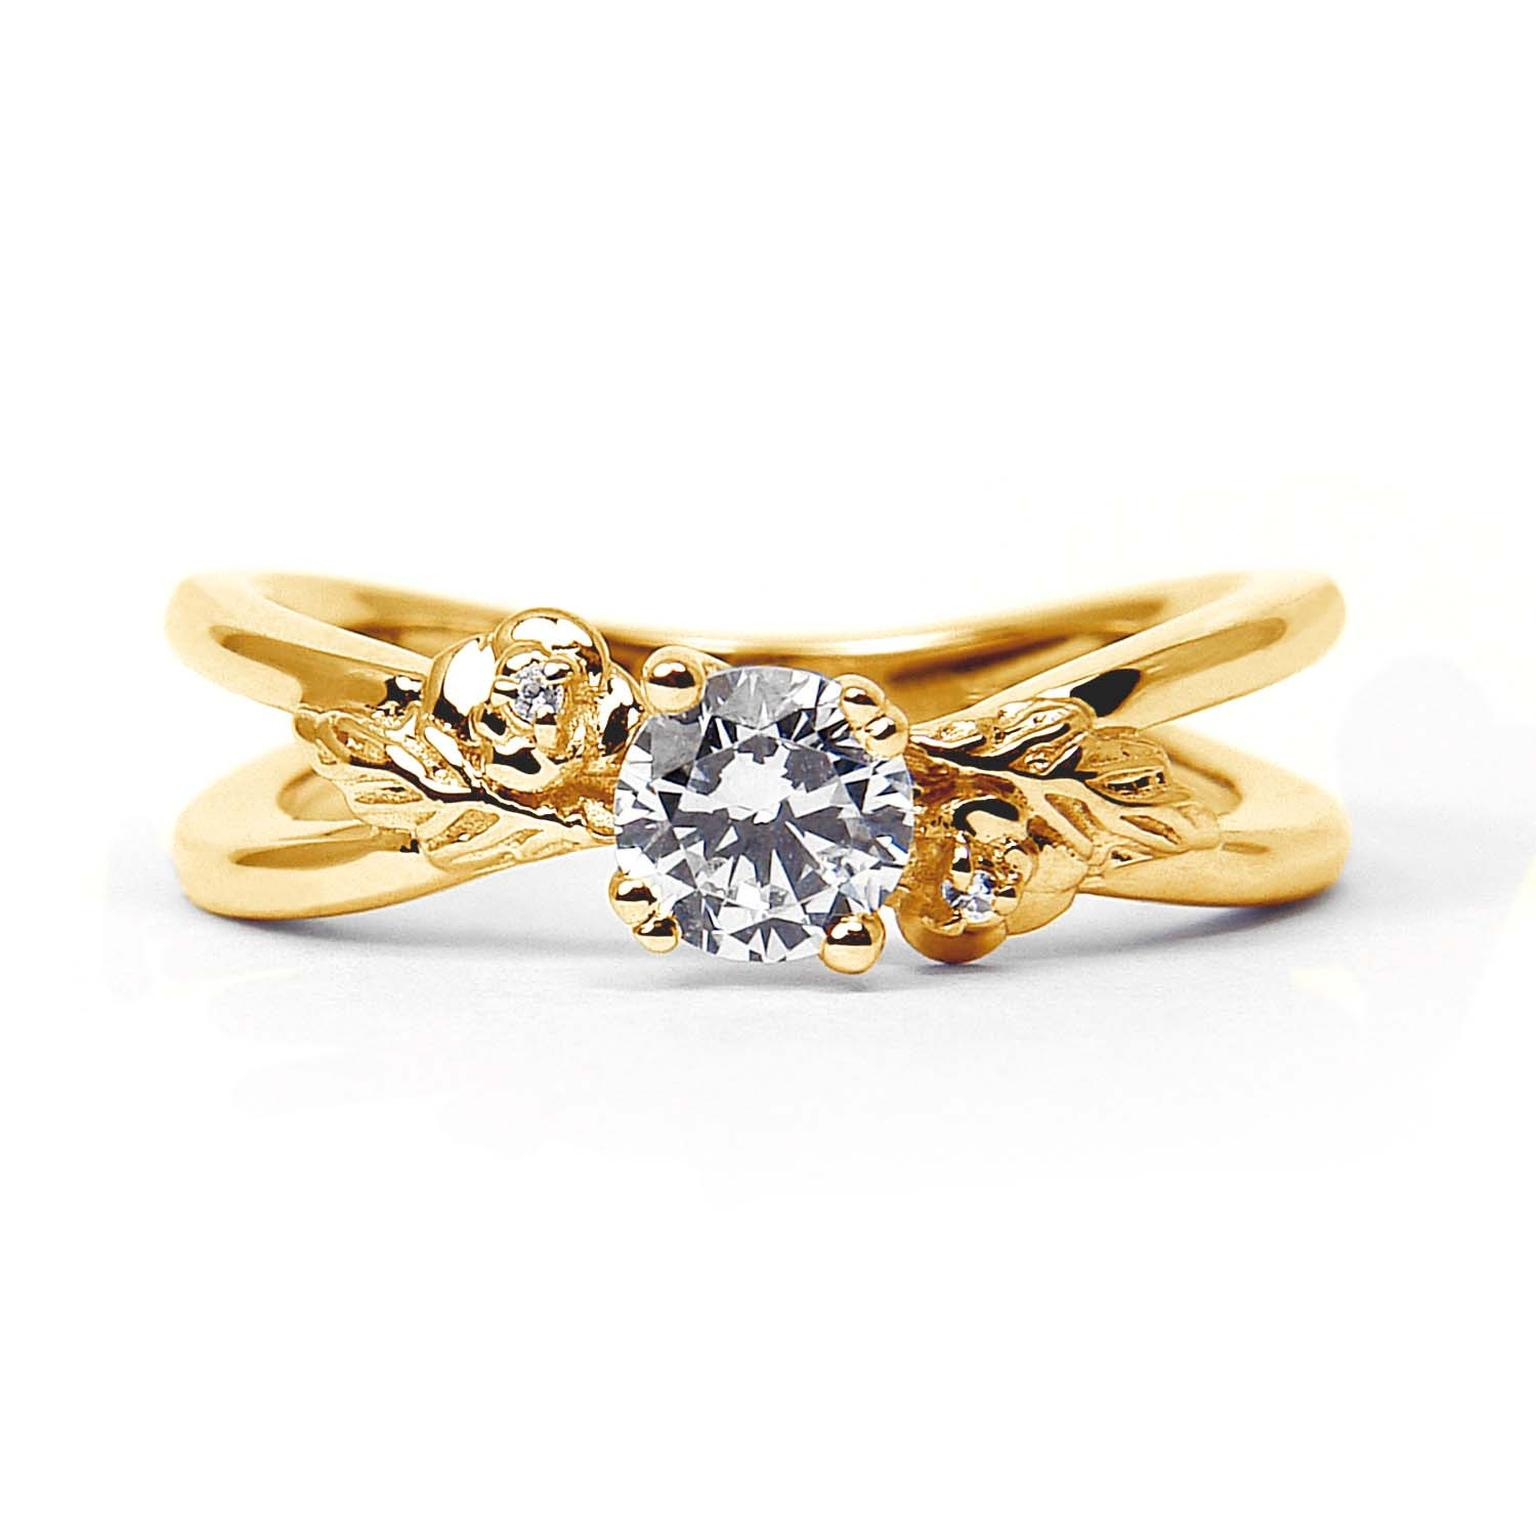 Arabel Lebrusan Foliage ethical diamond engagement ring featuring a Fairtrade yellow gold split band (from £2,340). From the Secret Garden collection.